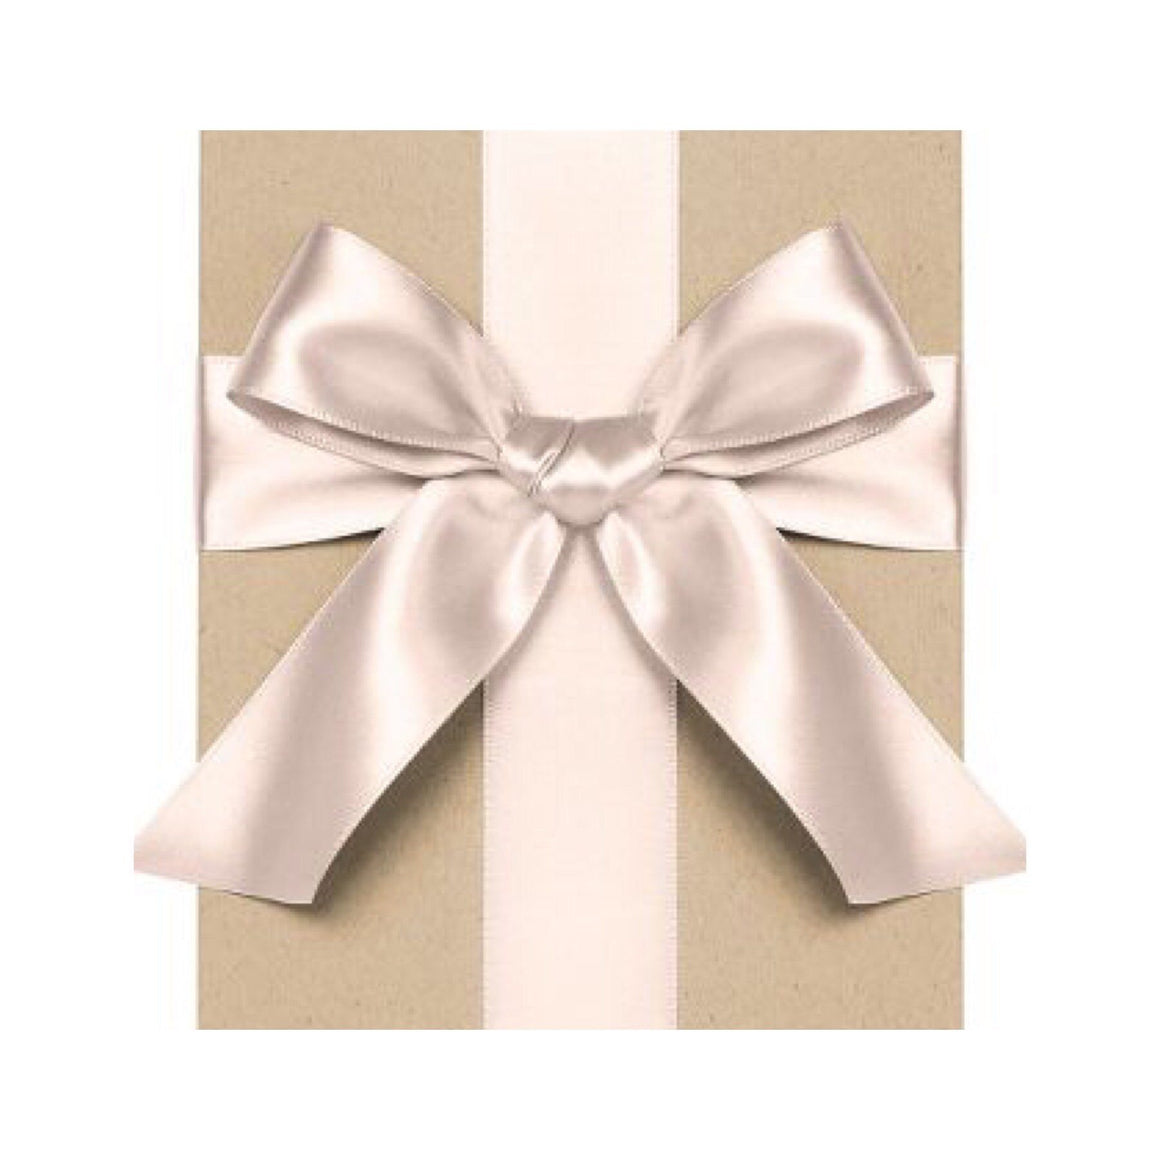 "GIFT GIVING - RIBBON 1/4"" BLUSH, RIBBON, WASTE NOT PAPER - Bon + Co. Party Studio"